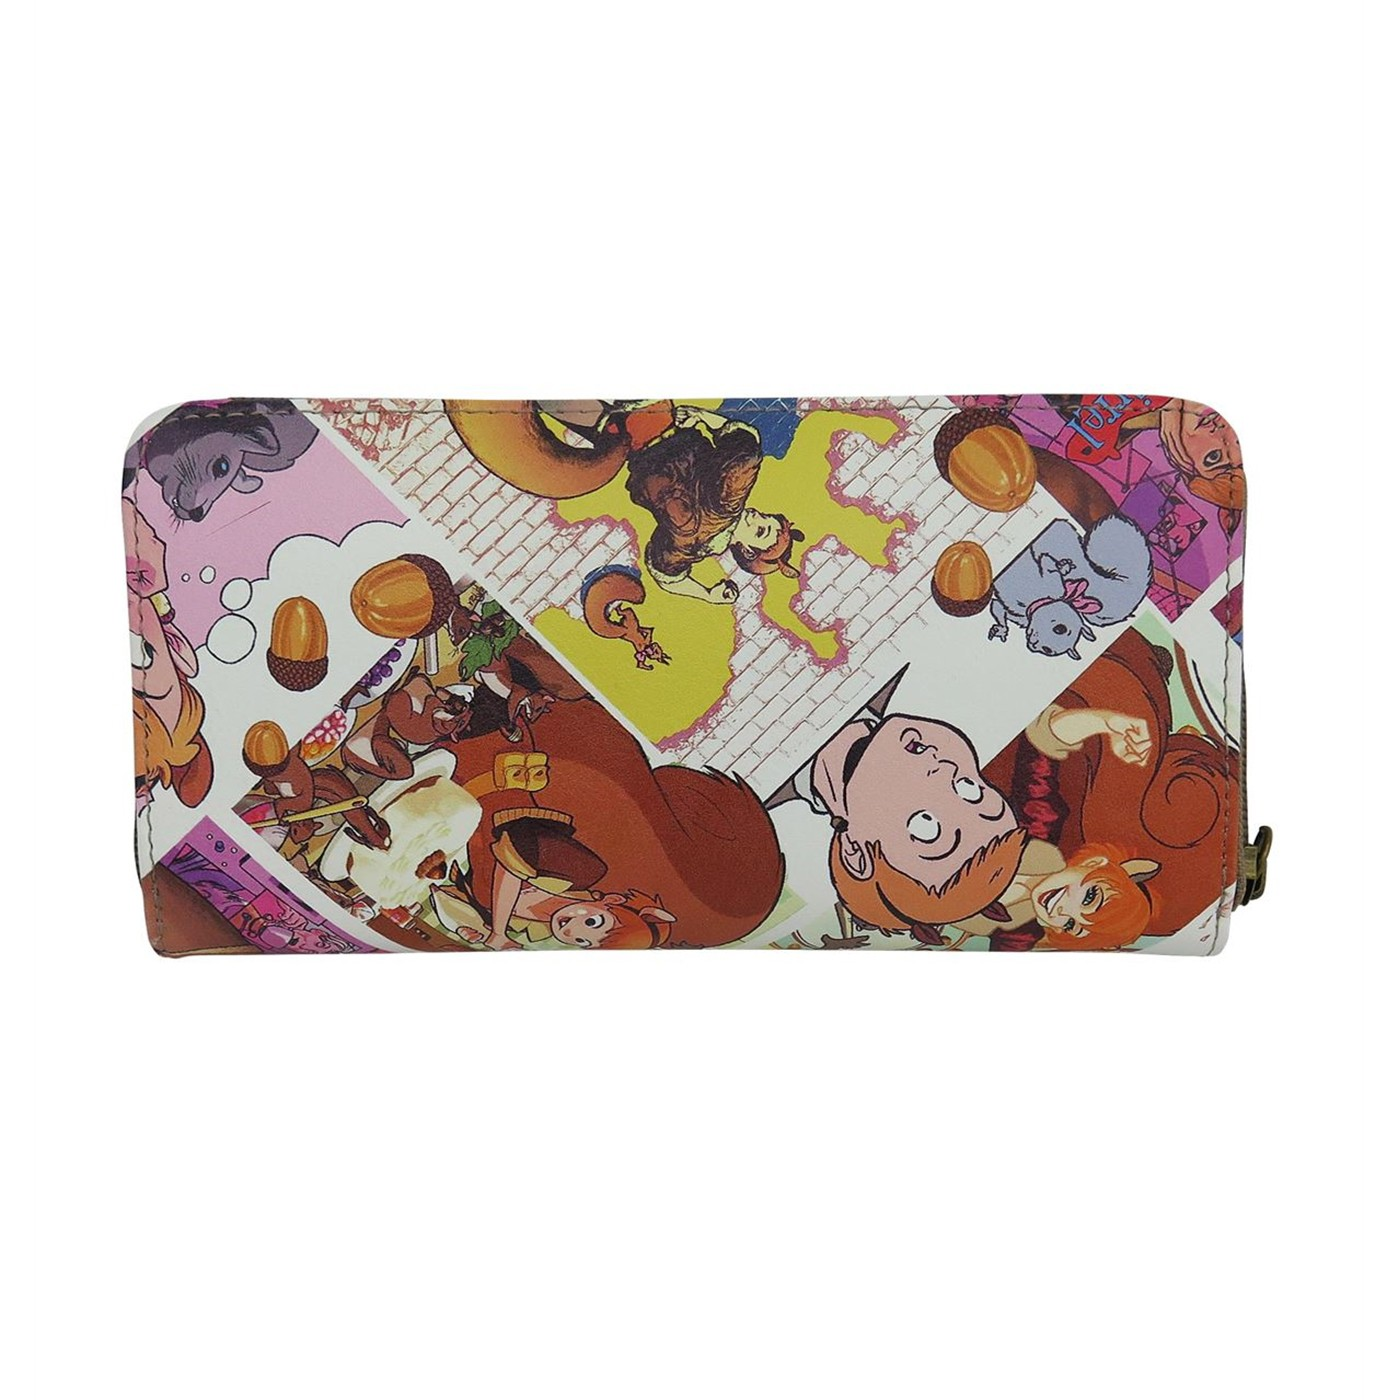 Squirrel Girl Got Nuts! Women's Zip Around Wallet